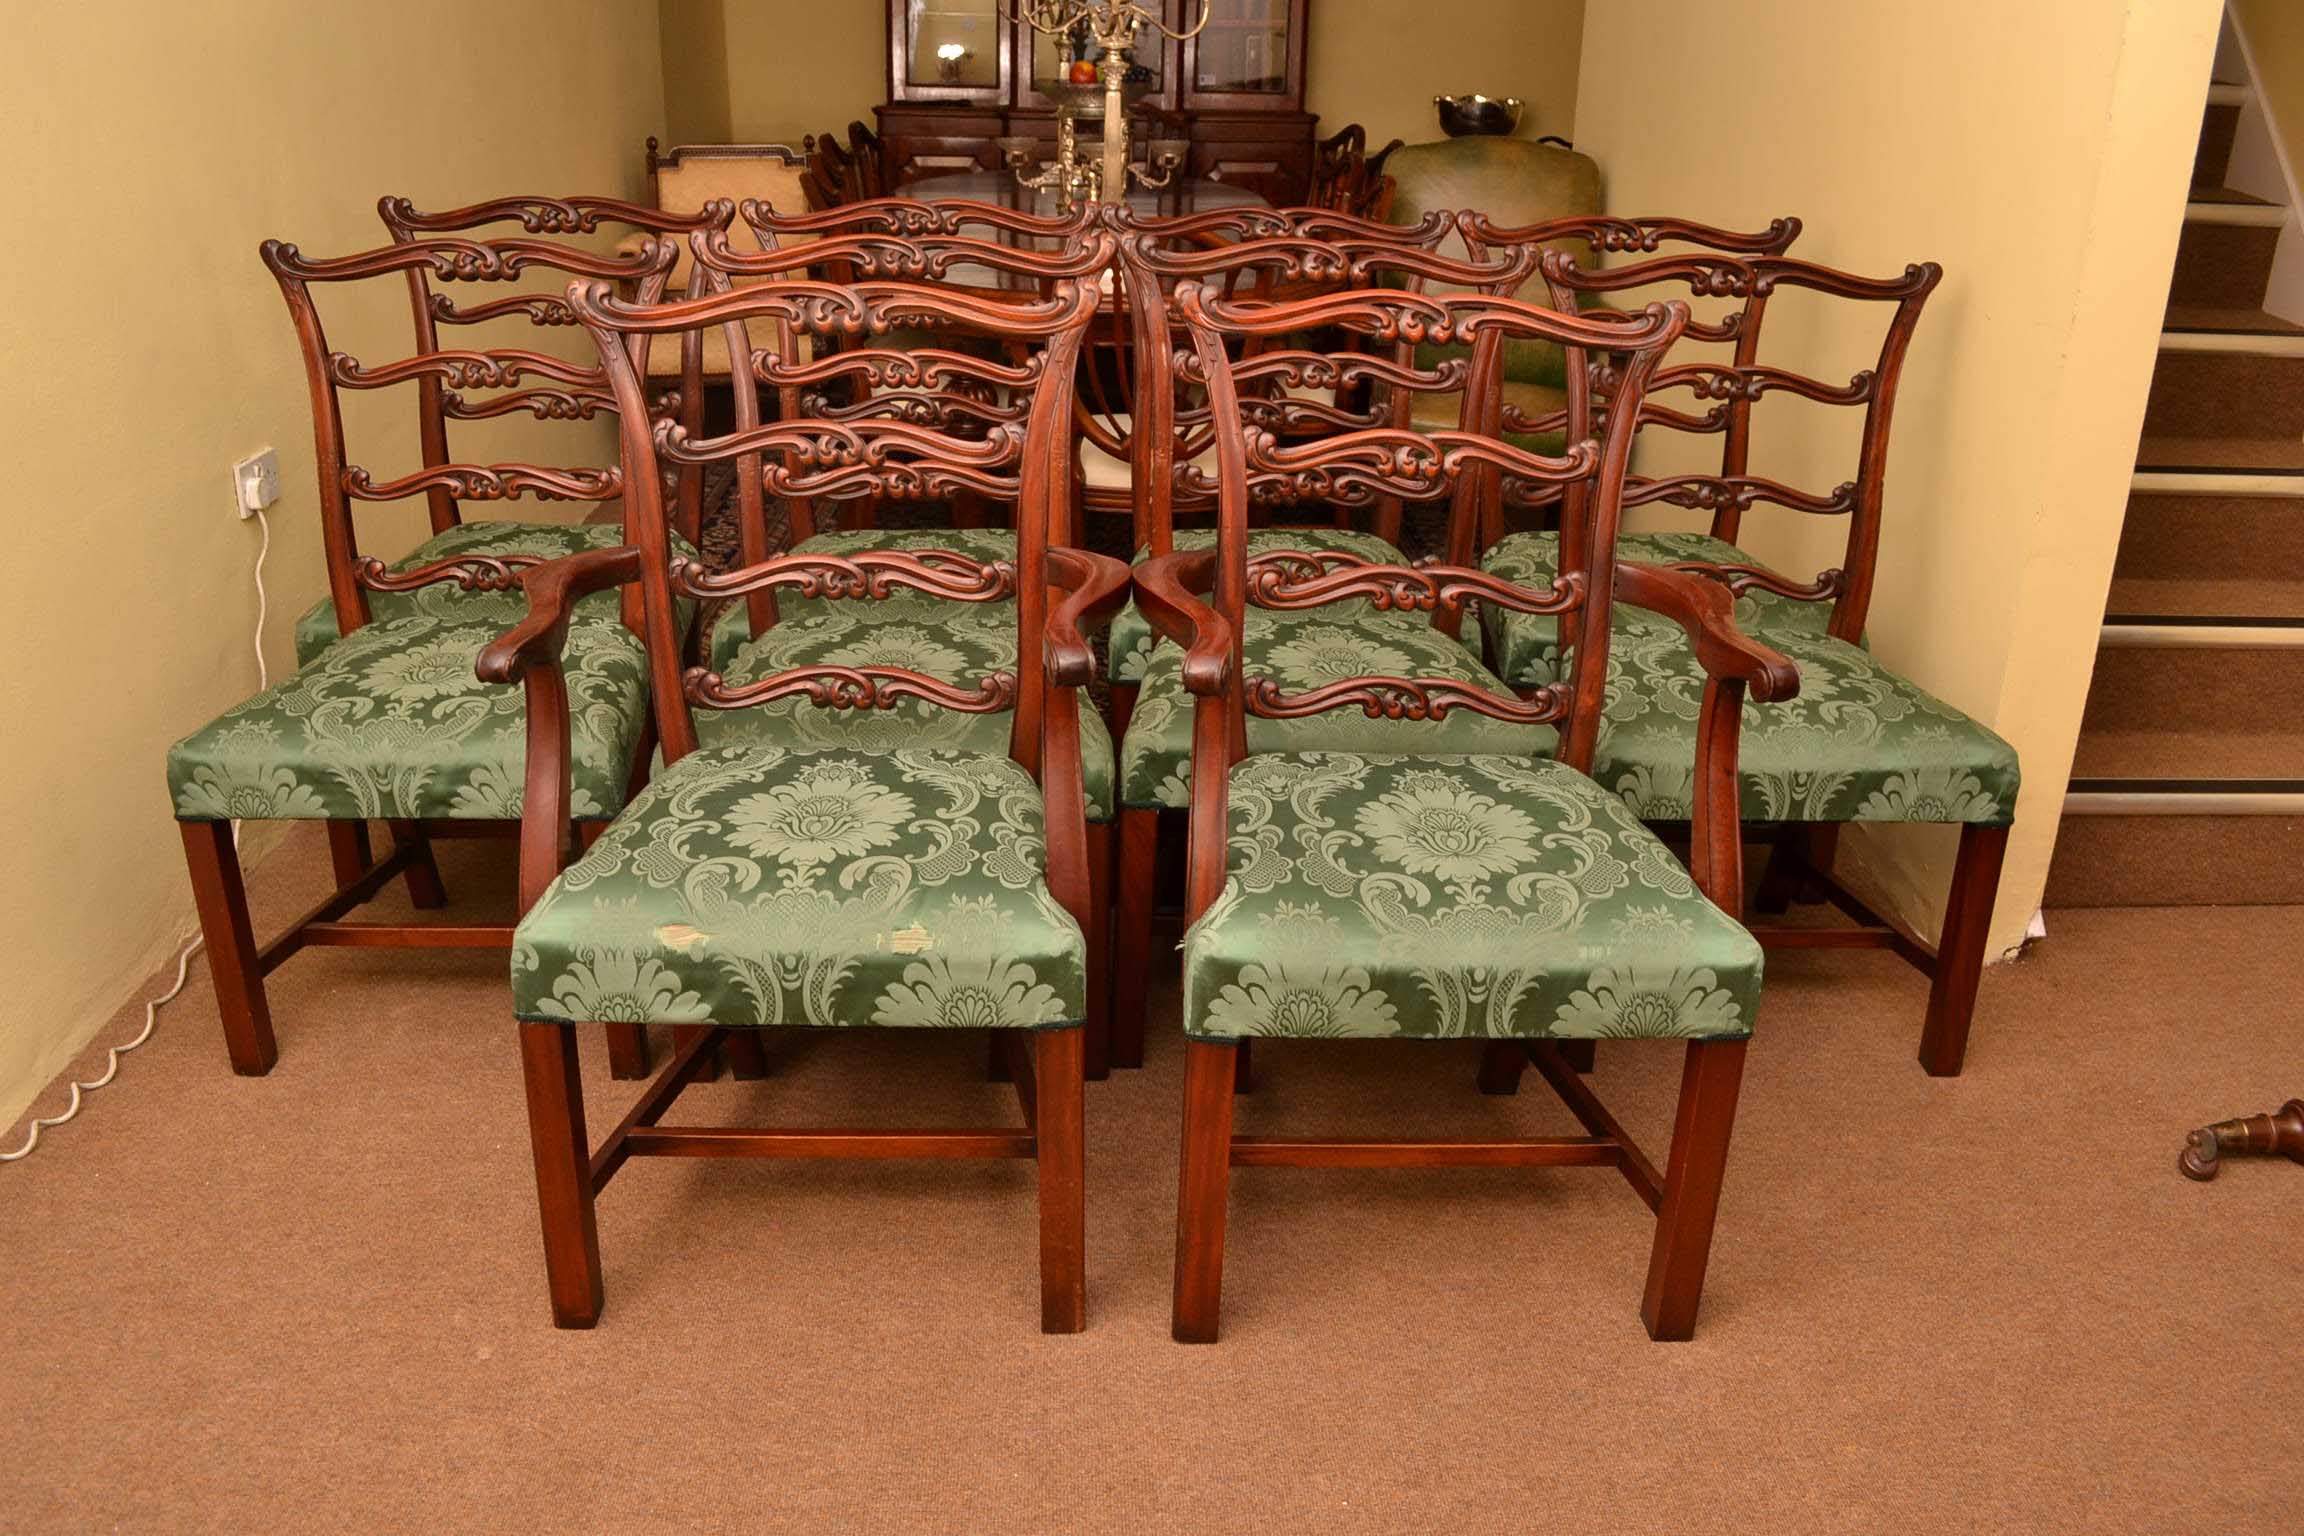 100 ladder back dining room chairs chippendale ladder back toile dining chairs for sale - Ladder back dining room chairs ...